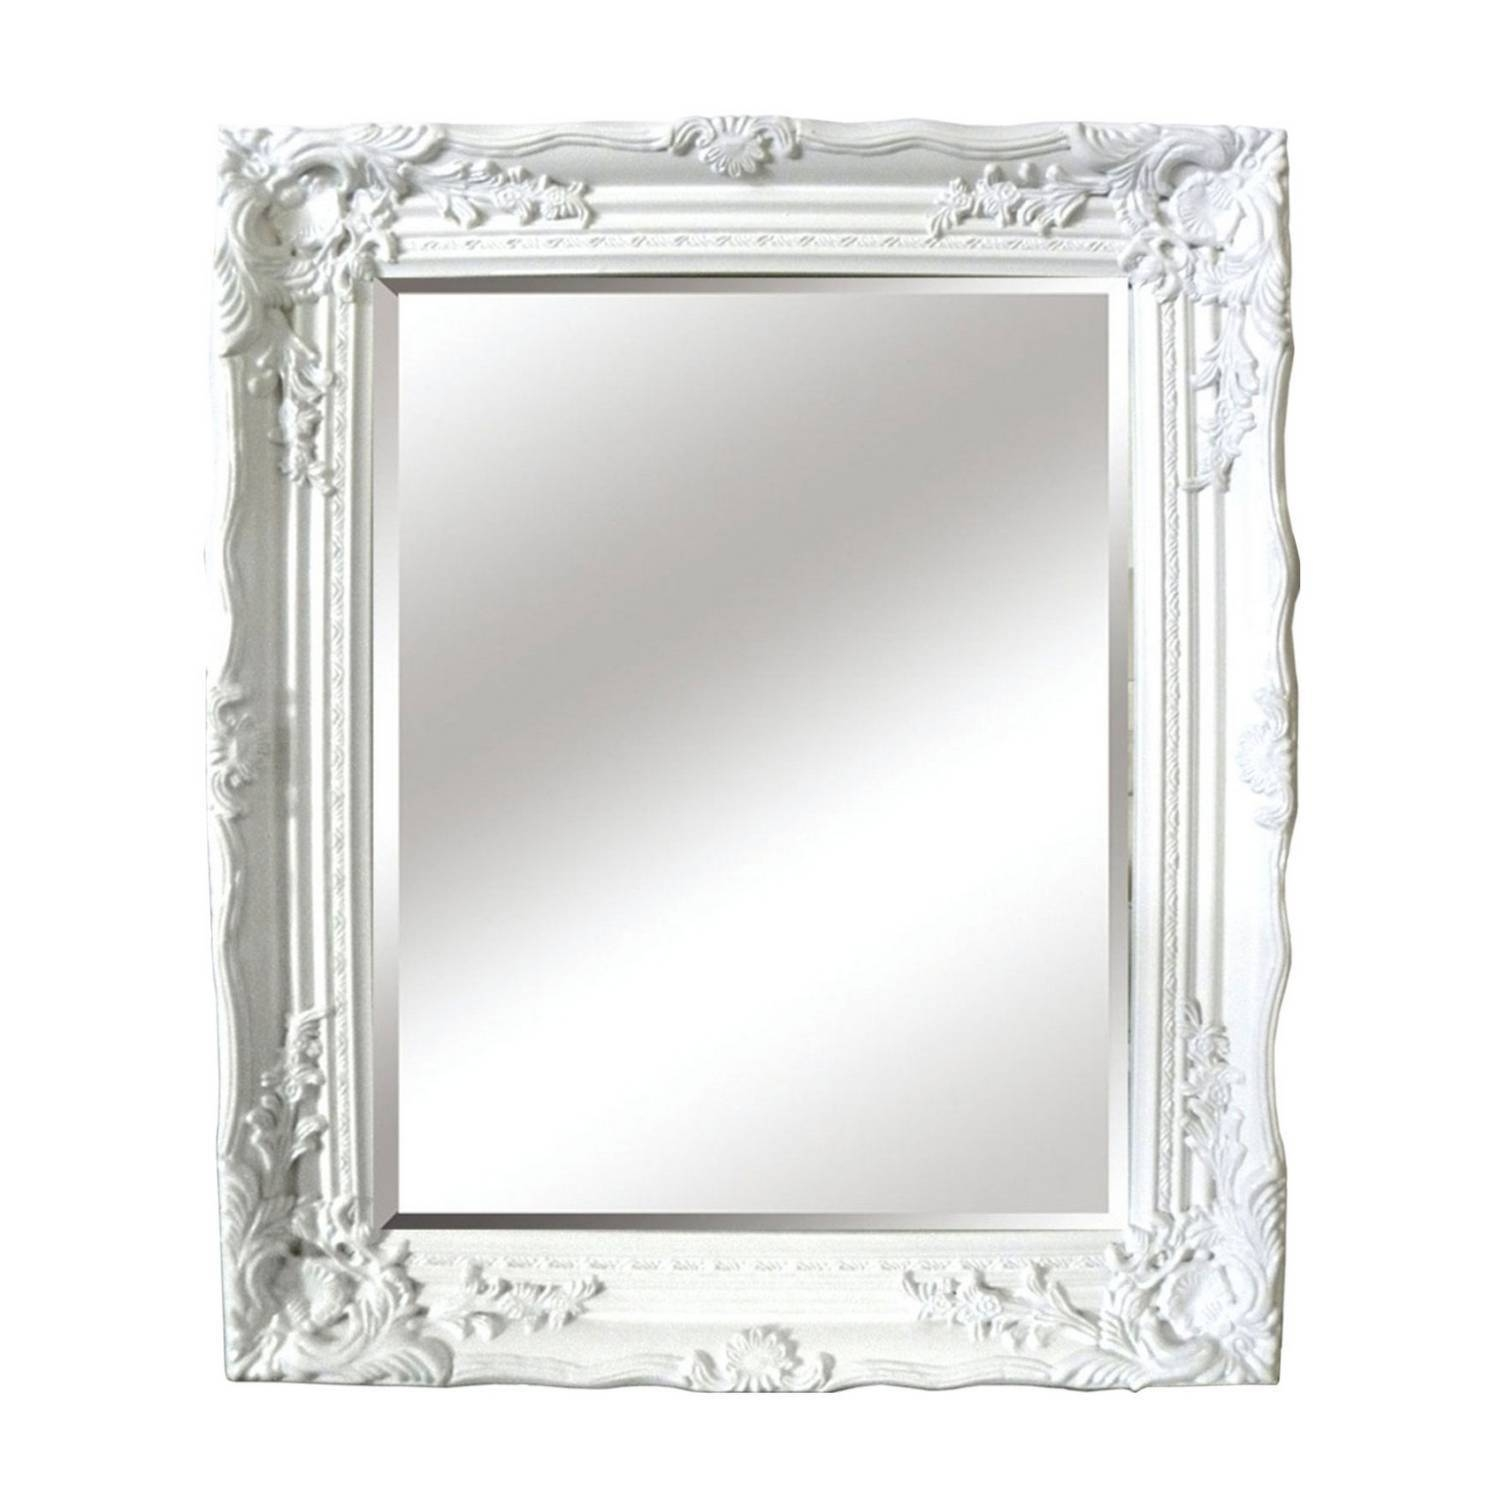 Antique Ornate Mirror with White Ornate Mirrors (Image 2 of 25)